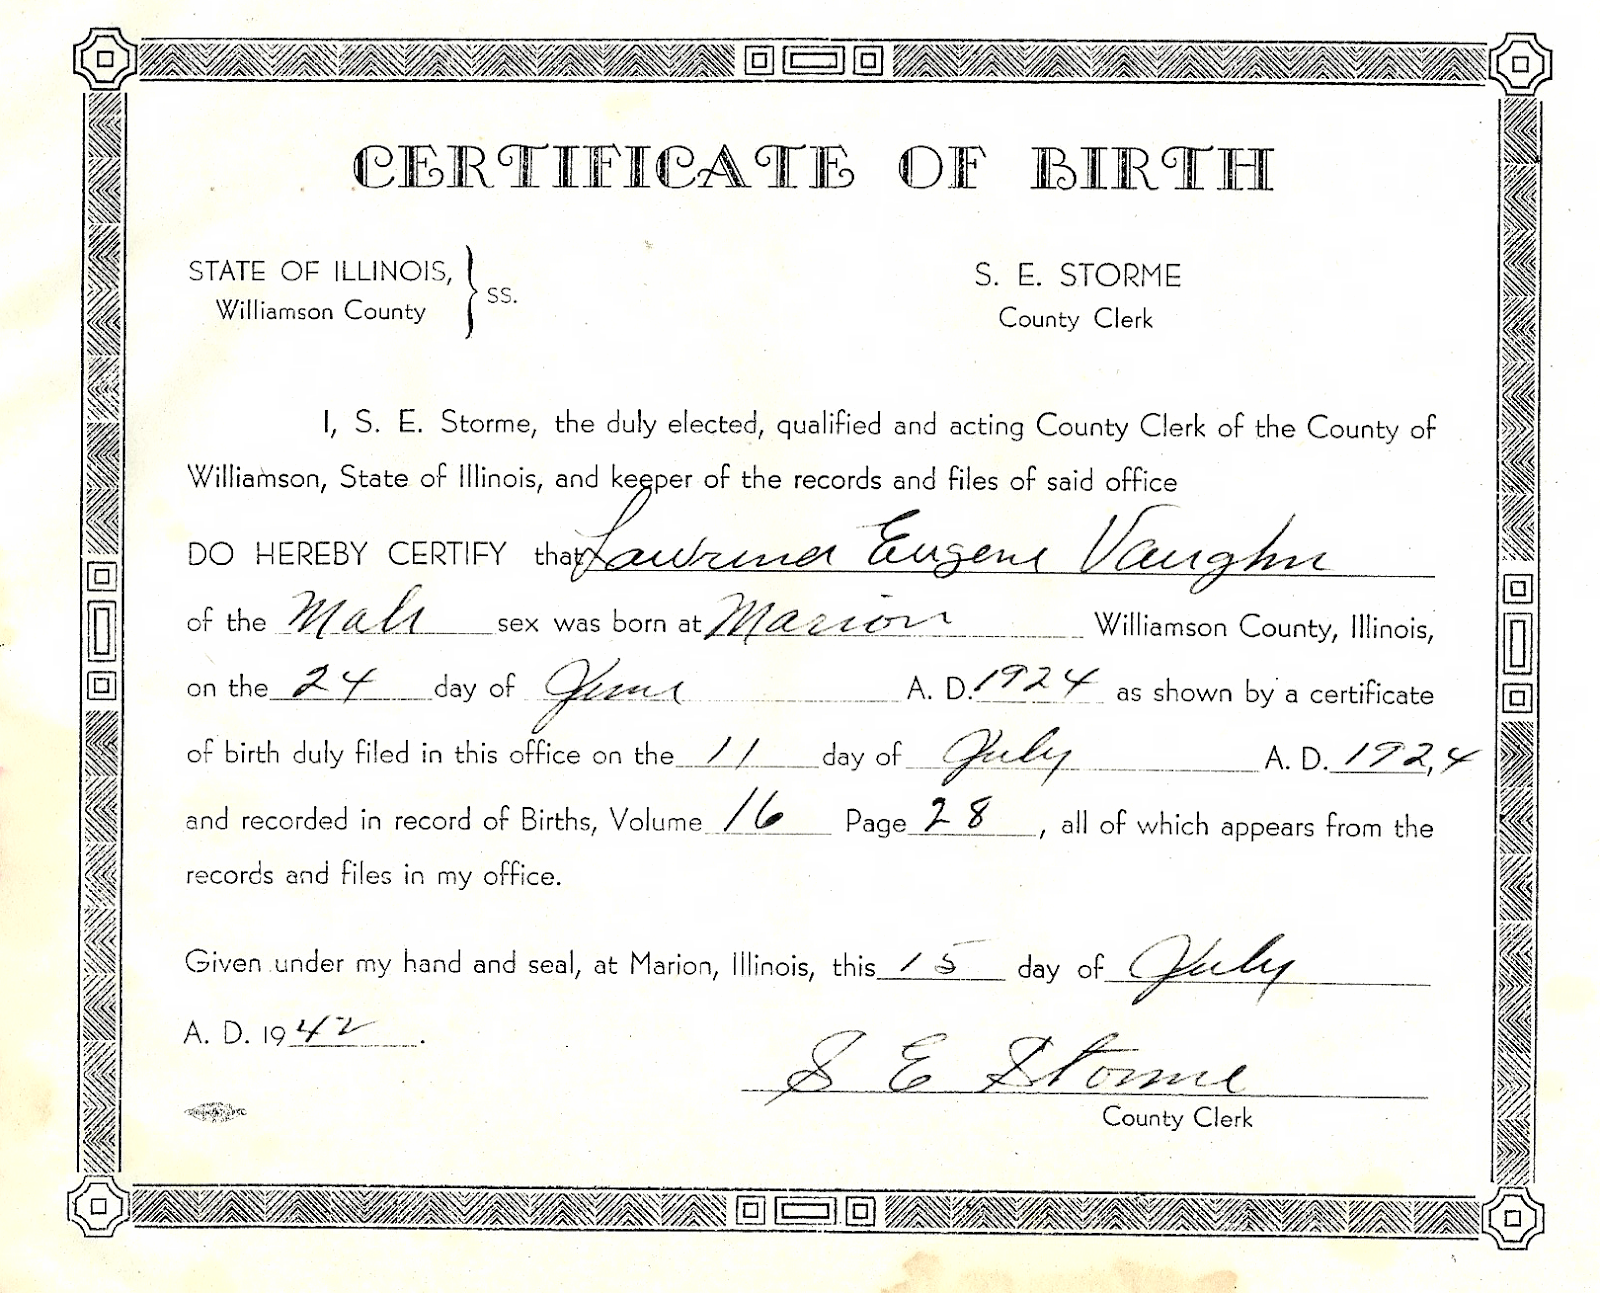 Lawrence Eugene Vaughn Birth Certificate.png